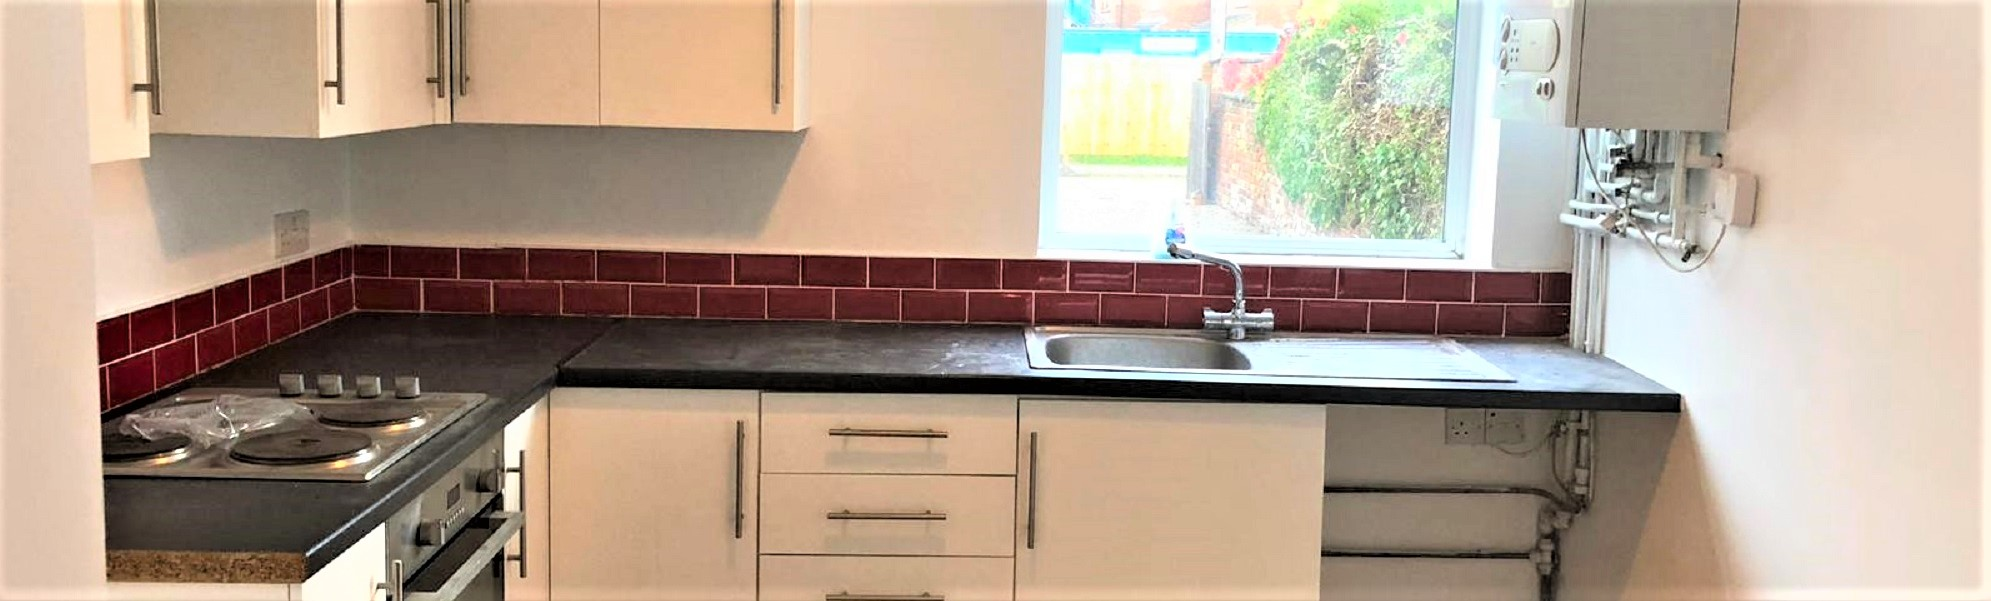 Recently Refurbished 3 Bedroom Home Available to Let- Nantwich Road, Crewe